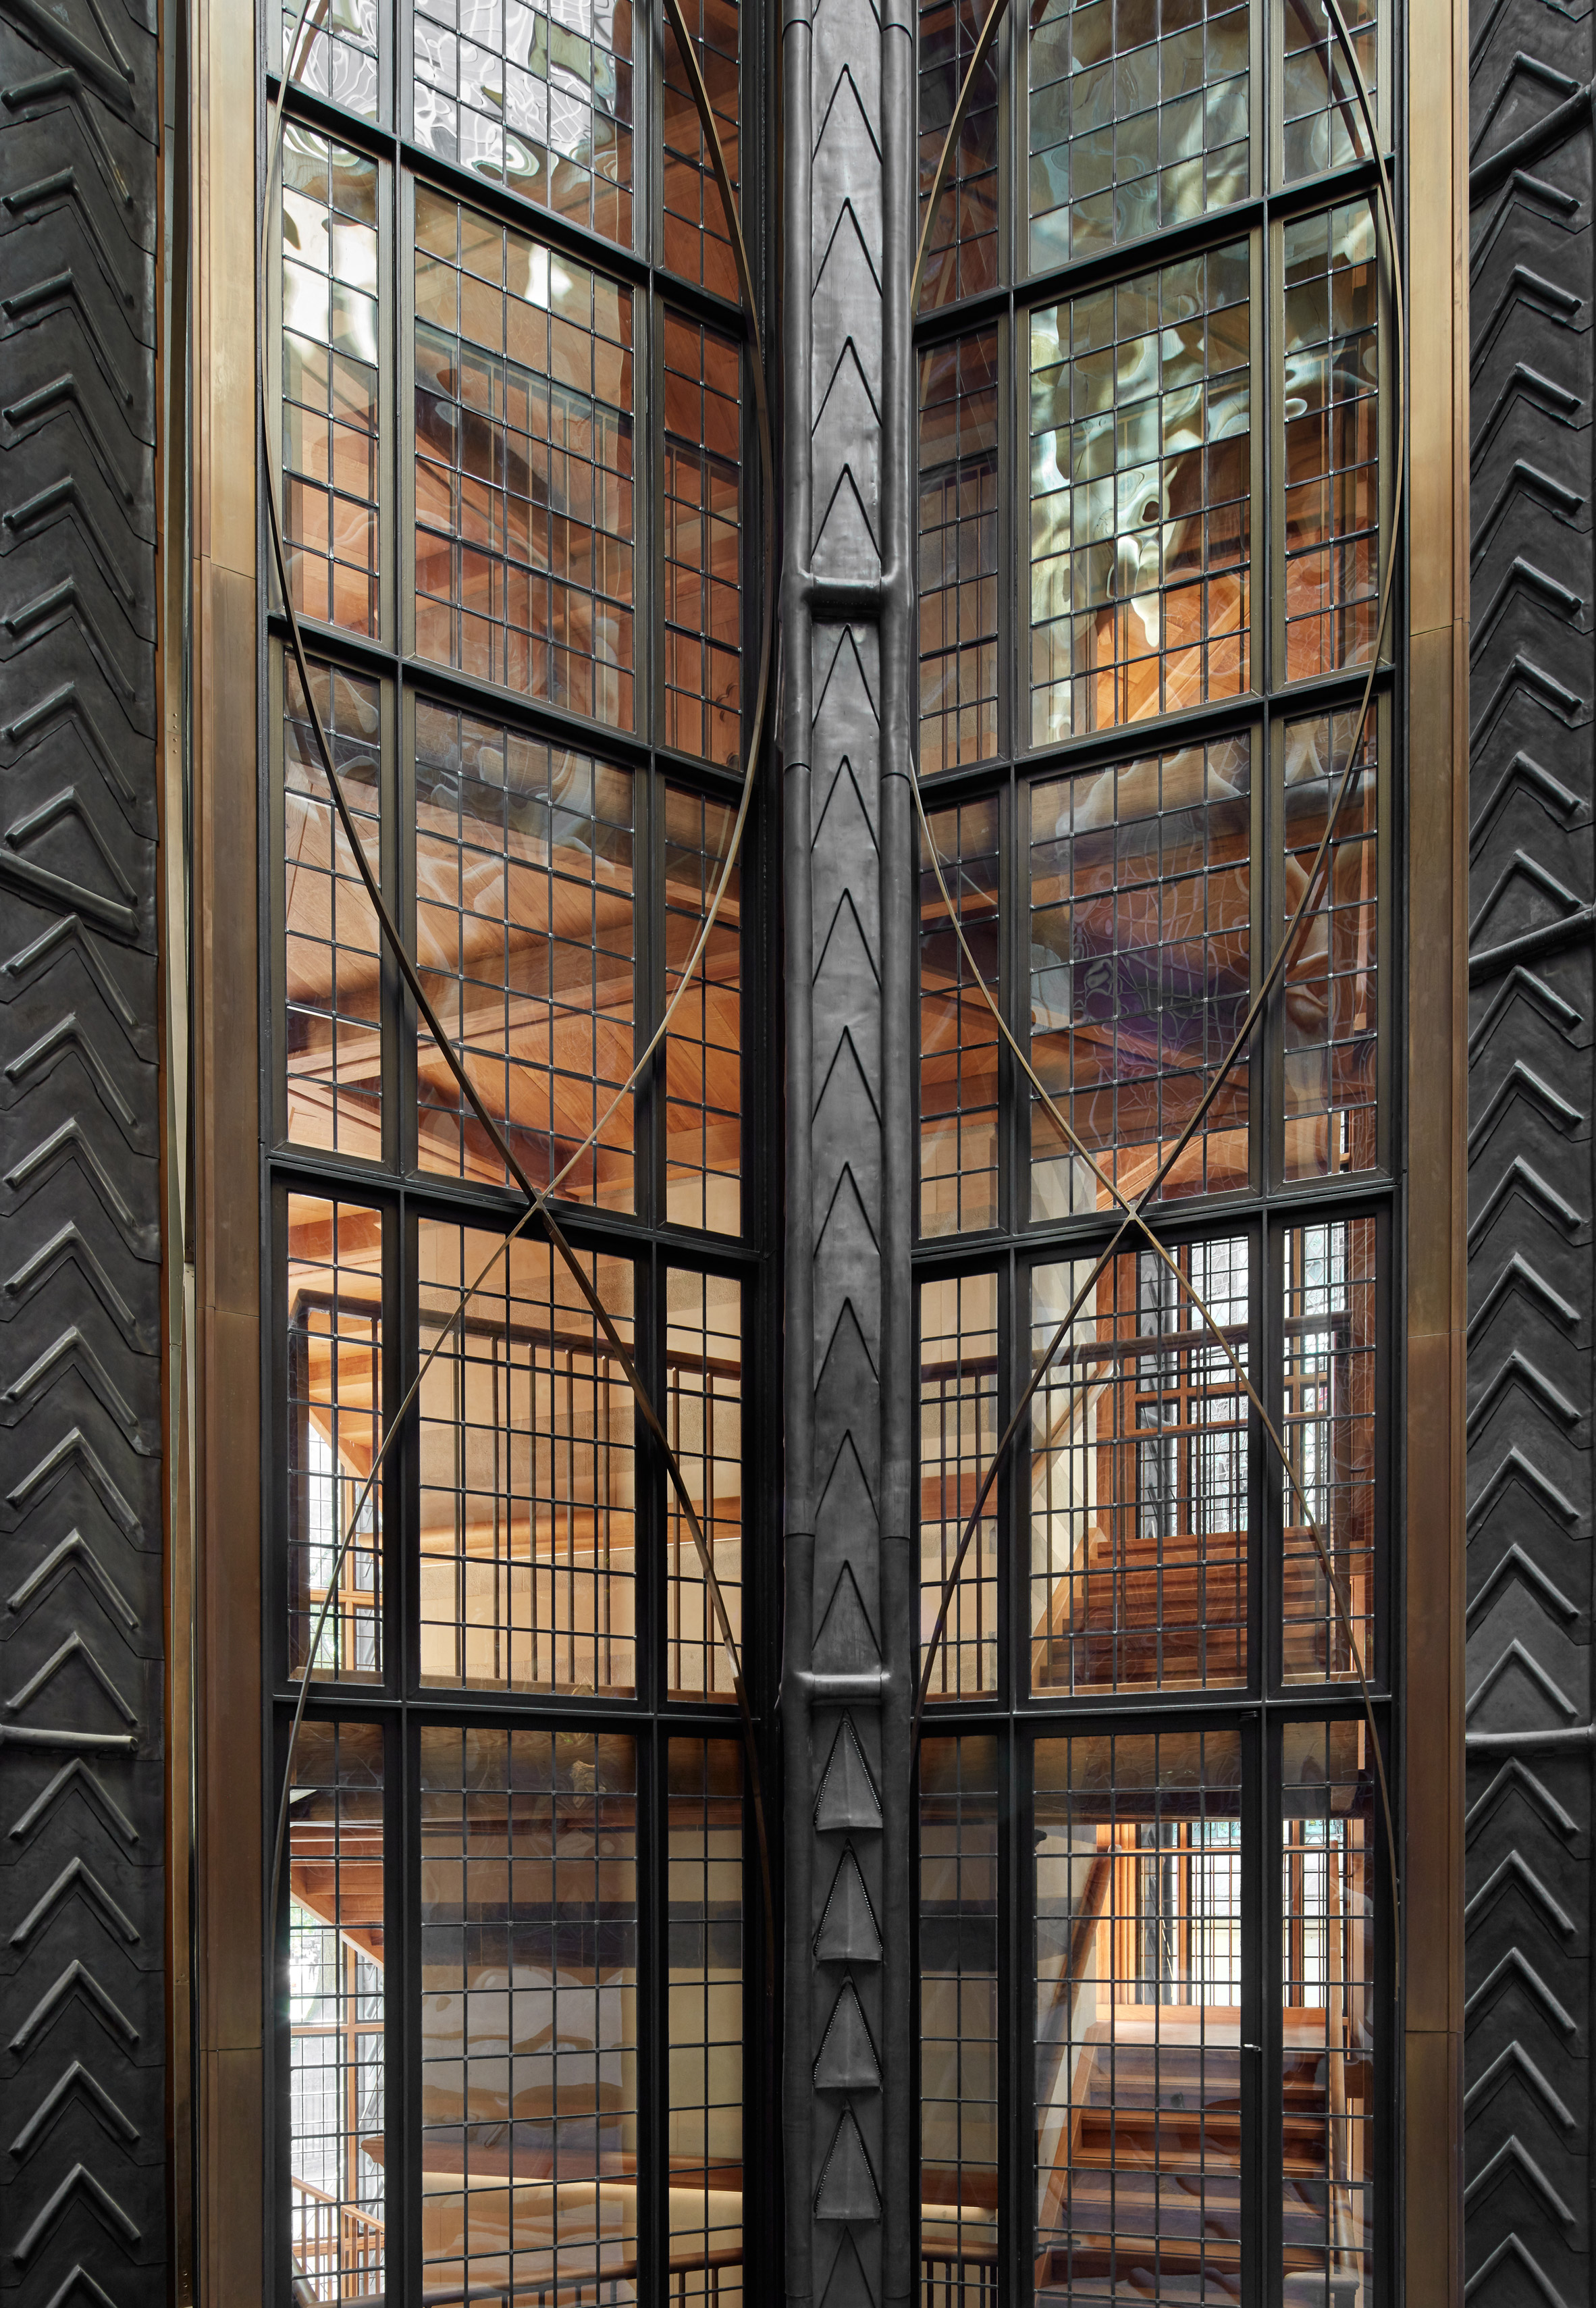 Westminster Abbey renovation by Ptolemy Dean Architects